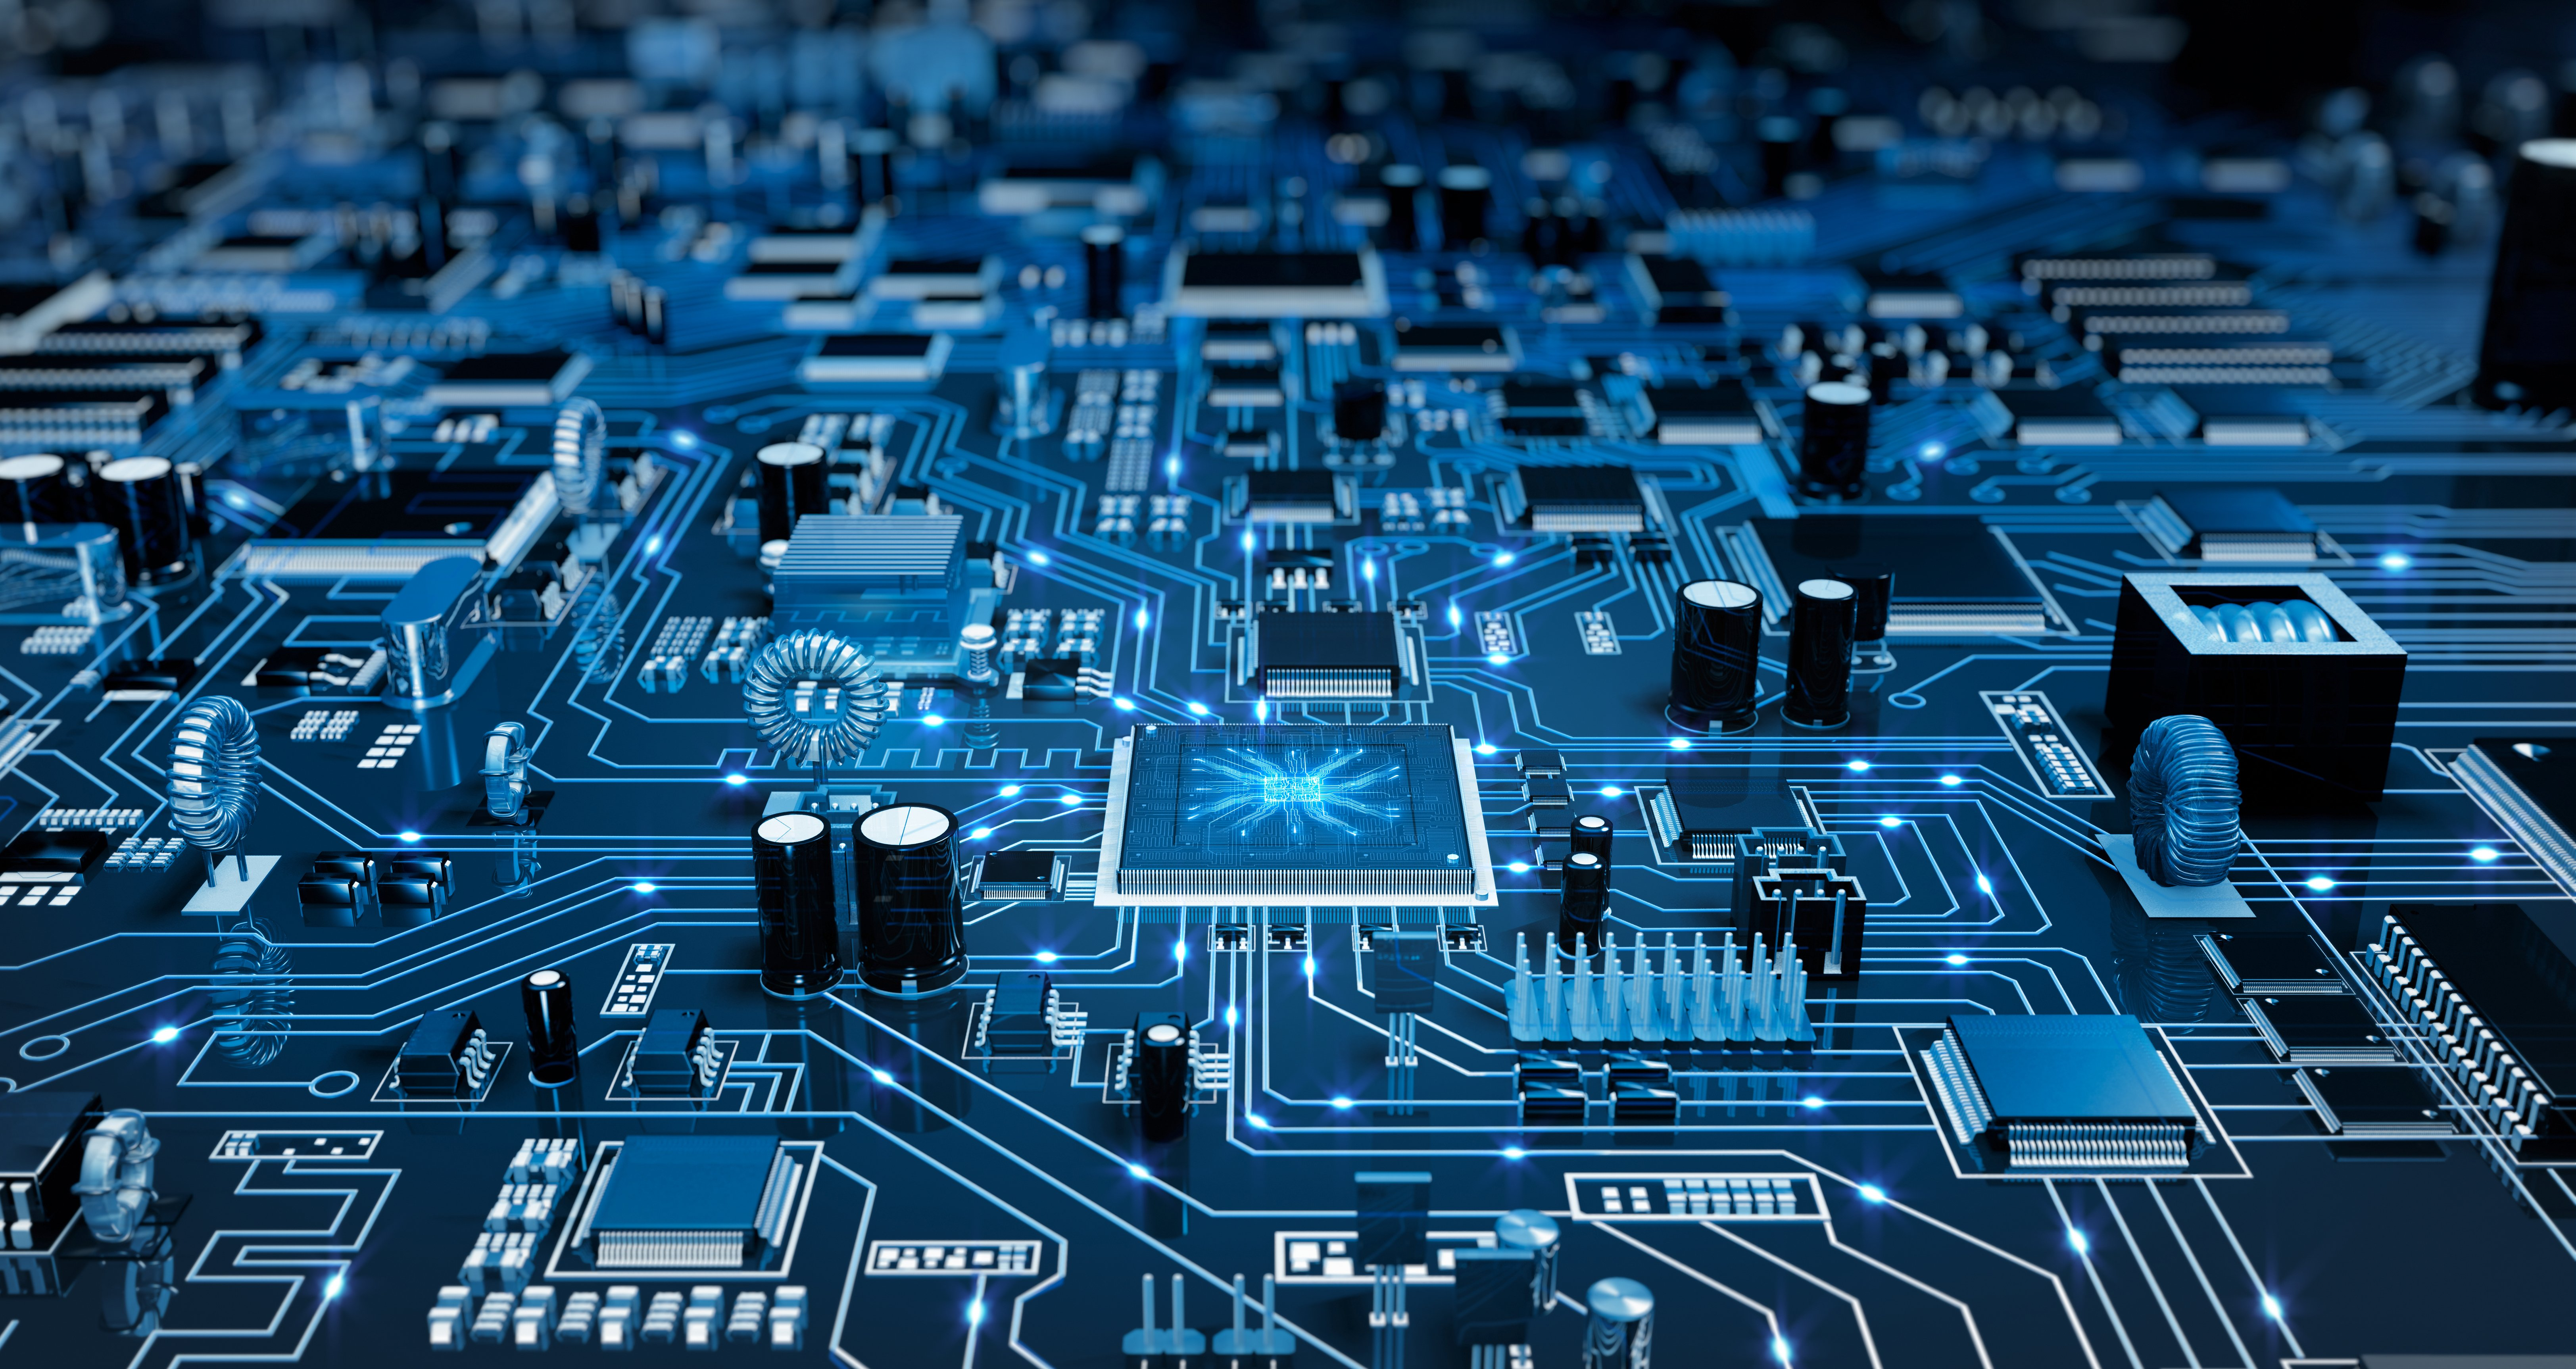 computer technology wallpaper,electronic engineering,electronics,electronic component,product,motherboard